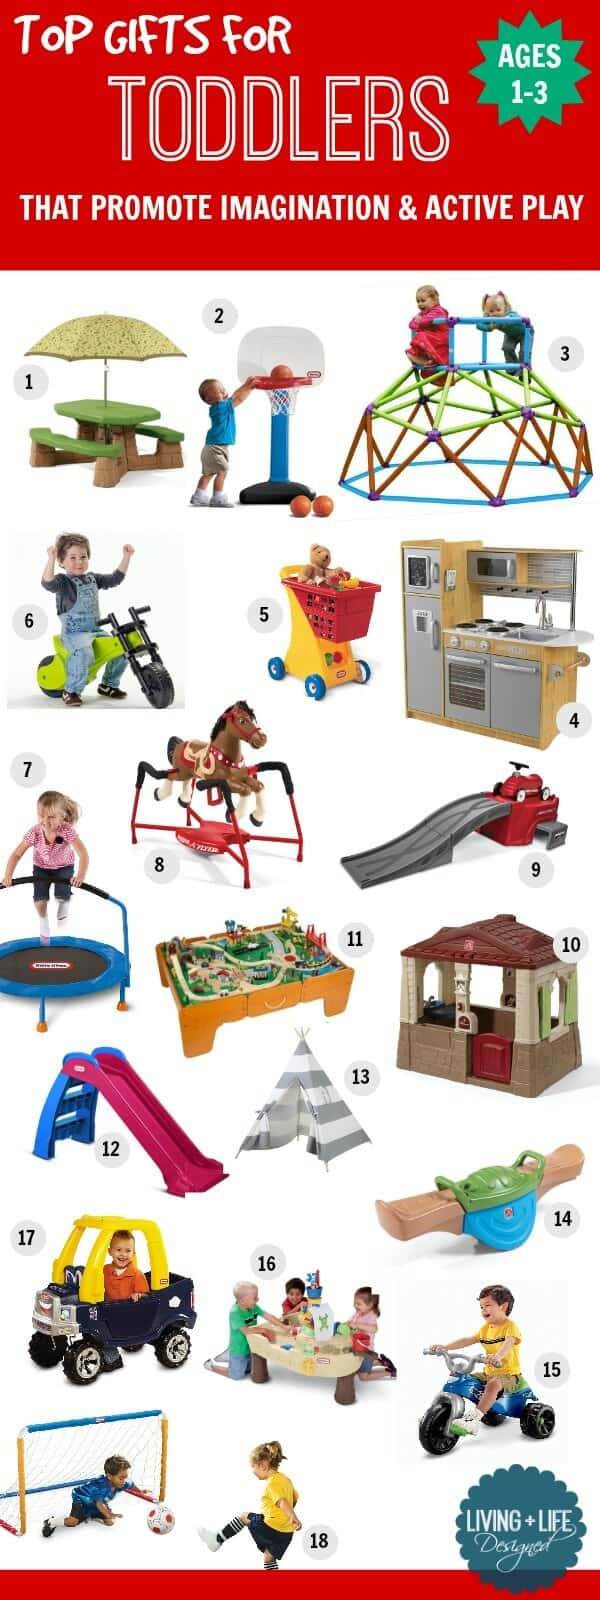 Imagination Toys For Boys : Gifts for toddlers years old that promote imagination